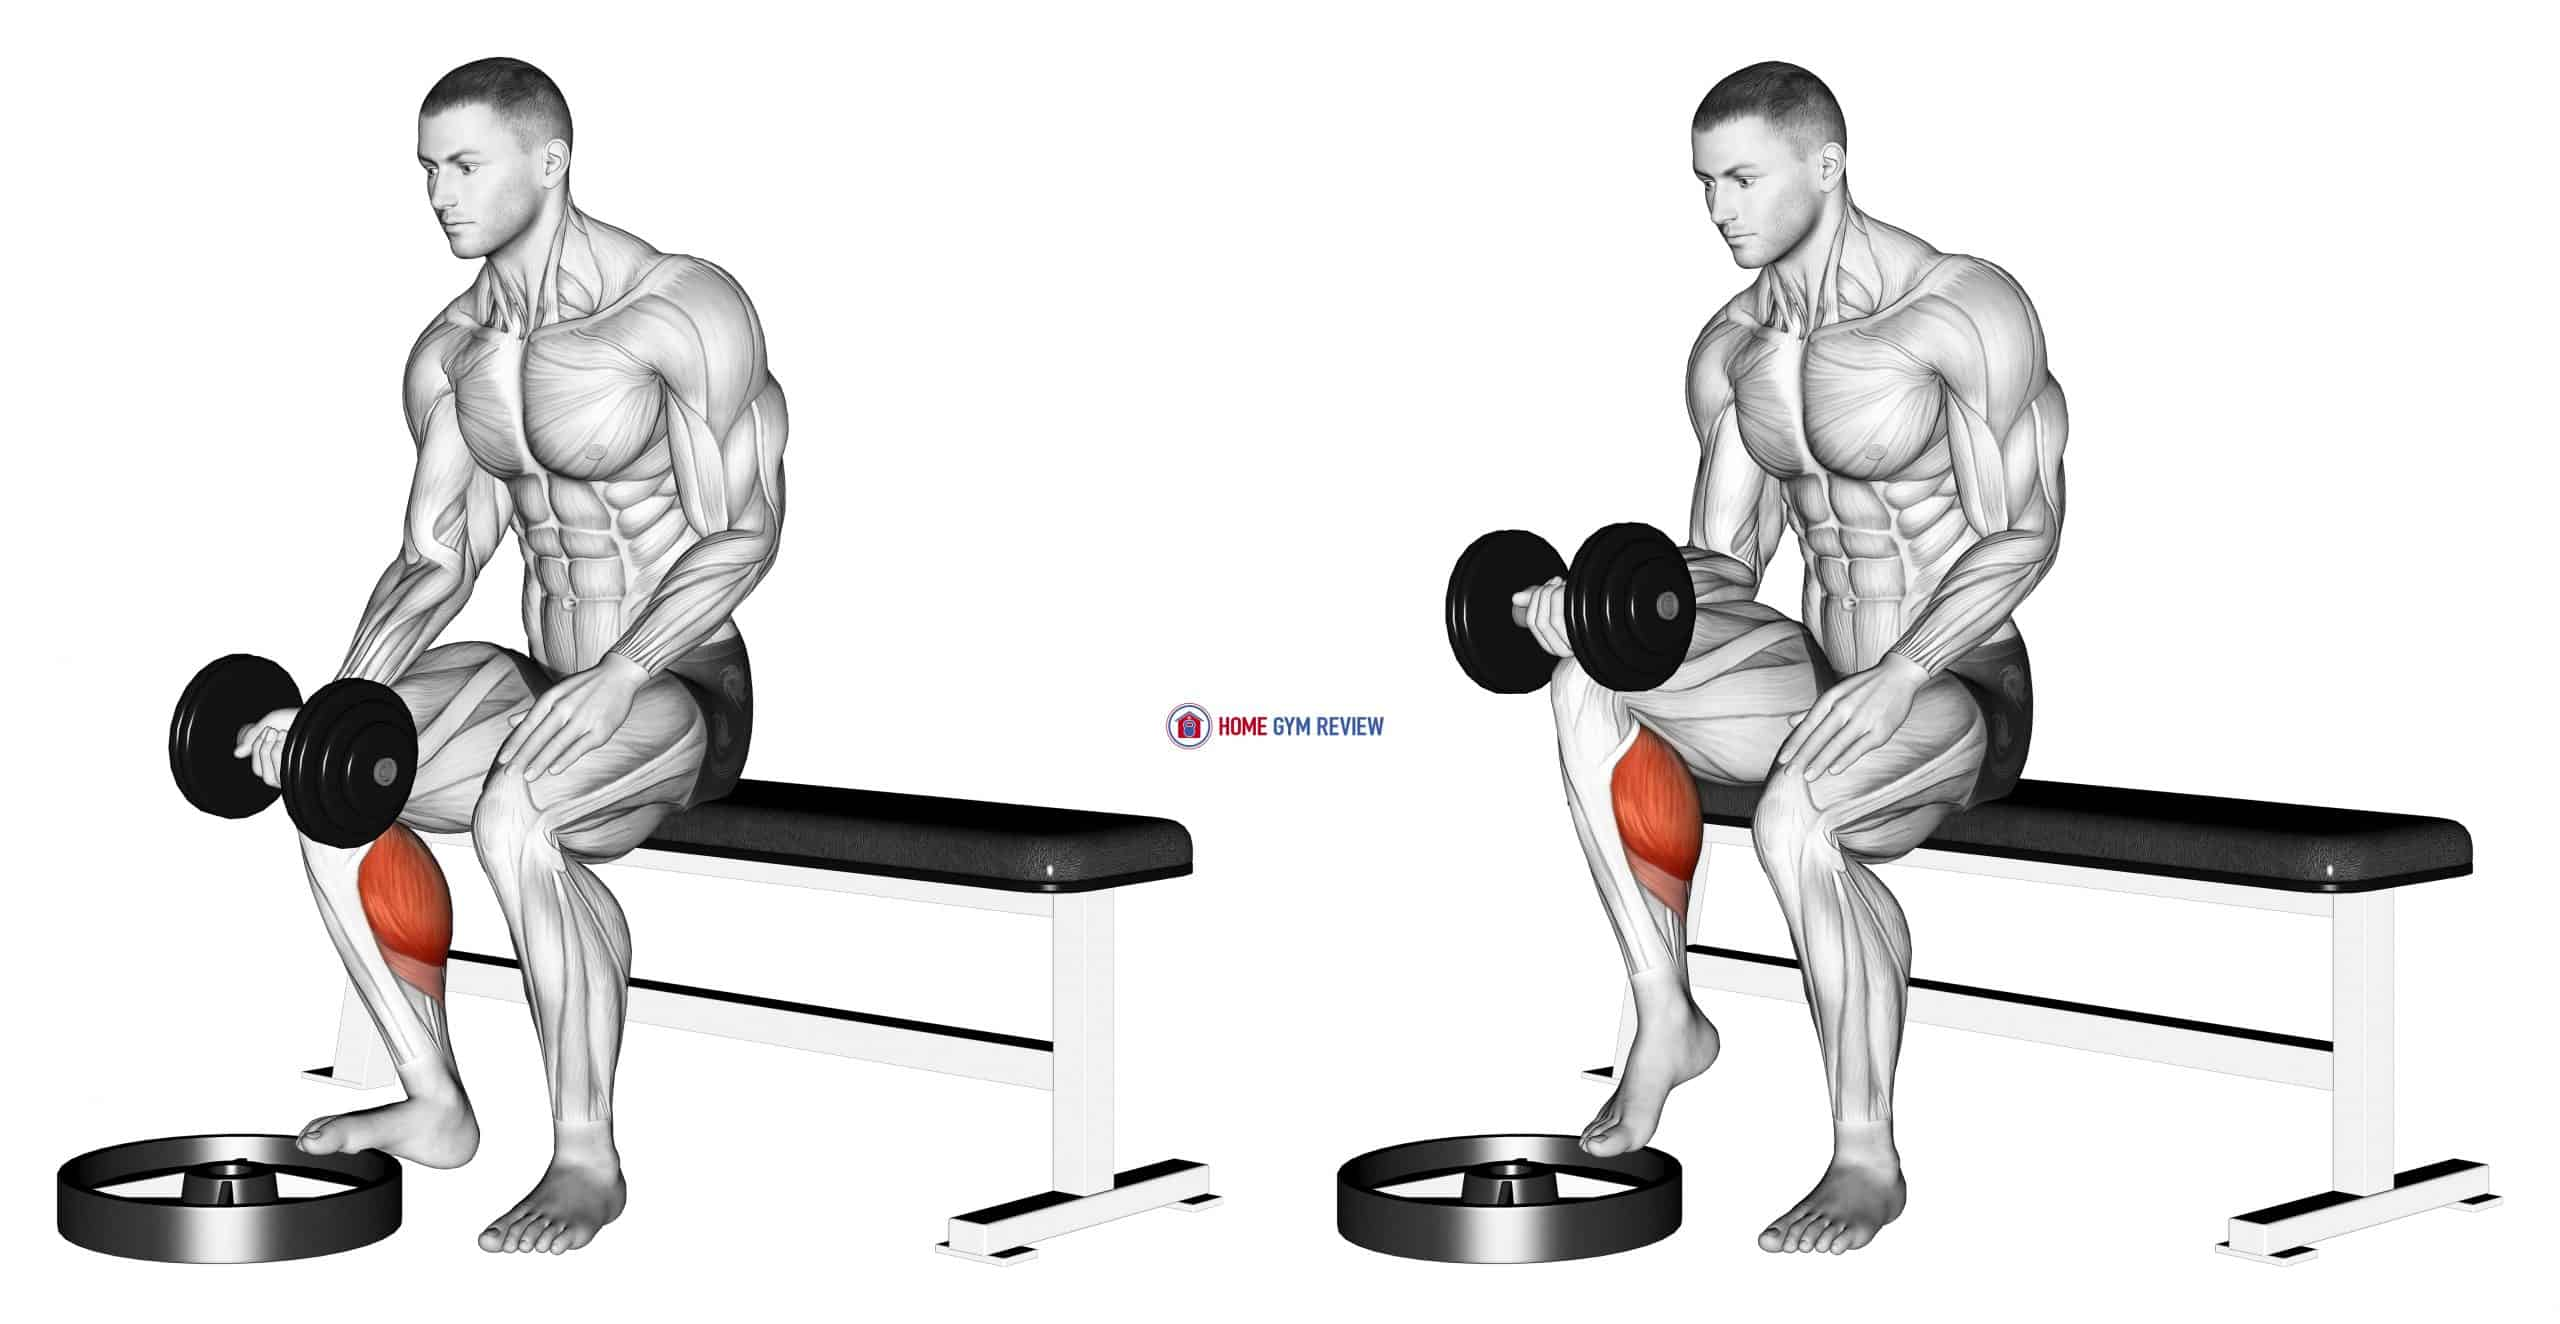 Dumbbell Seated One Leg Calf Raise - Palm up